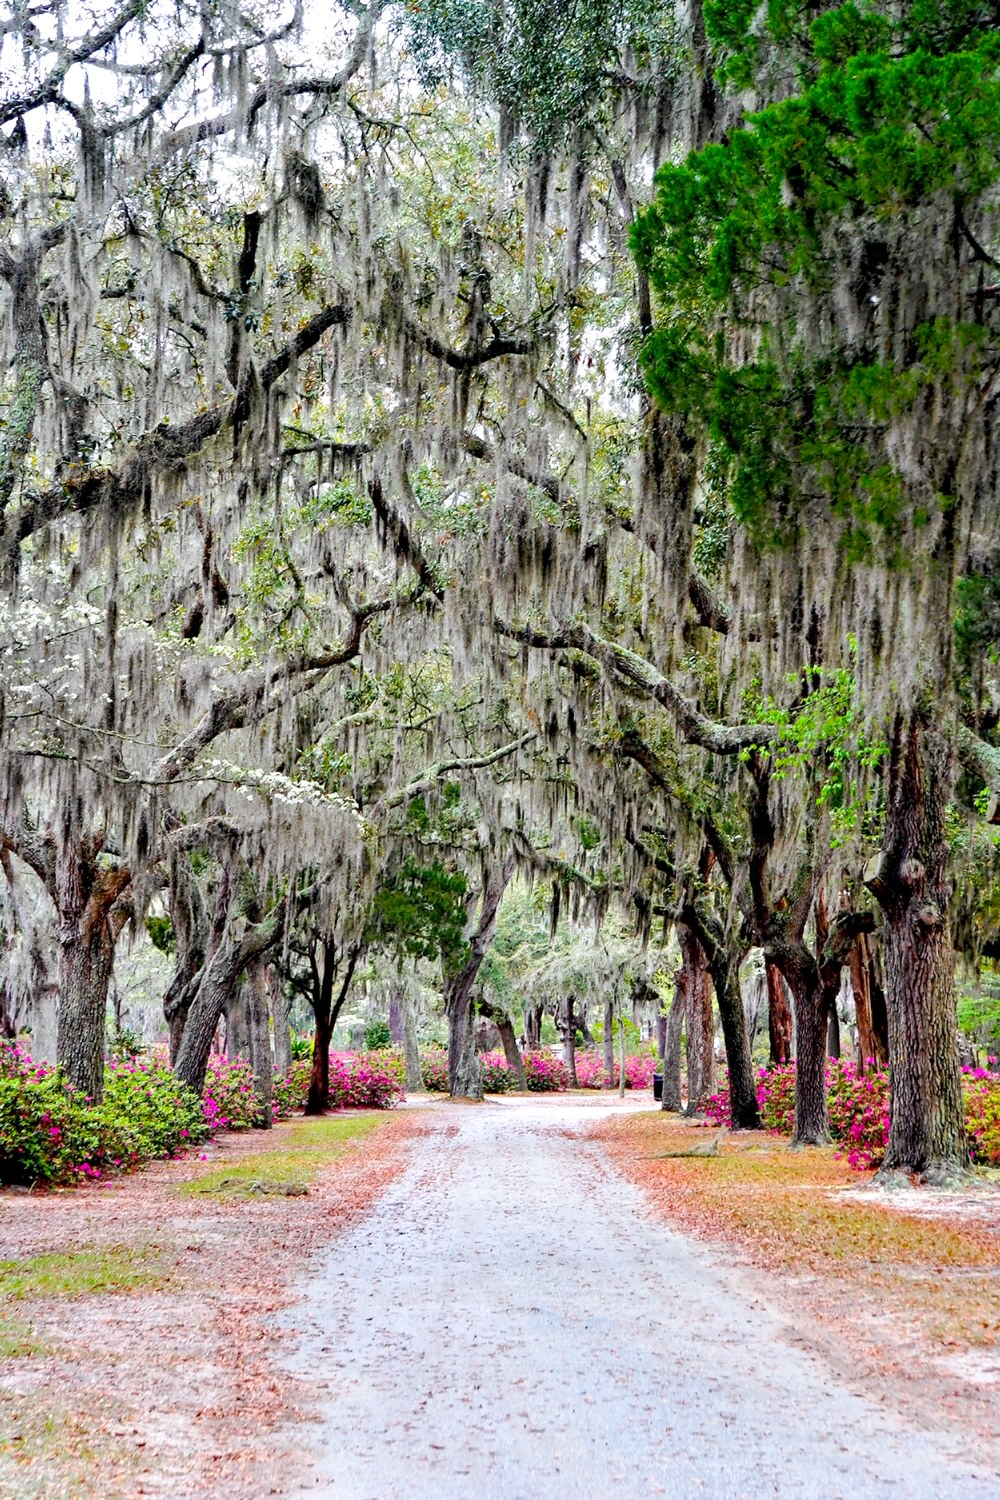 A dirt road surrounded by trees covered in Spanish moss in the Bonaventure cemetery. Between the trees there are large shrubs covered in bright pink flowers. Its one of the best Savannah photo spots.